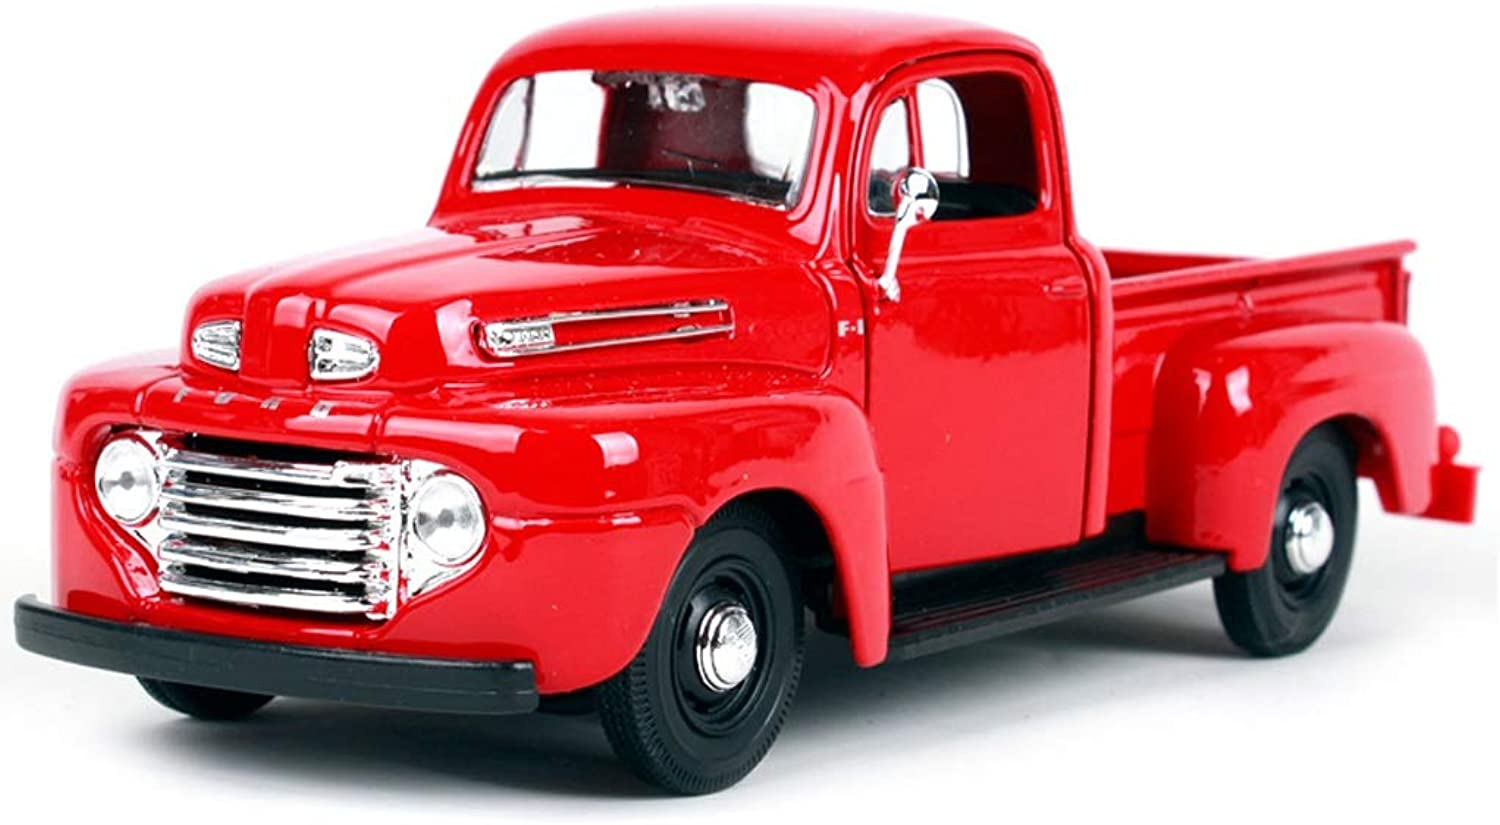 ZHPBHD Car Model Car 1 25 Ford F1 Pickup Simulation Alloy Diecasting Toy Jewelry Sports Car Collection Jewelry 19.2x7.3x7.4CM model (color   Red)